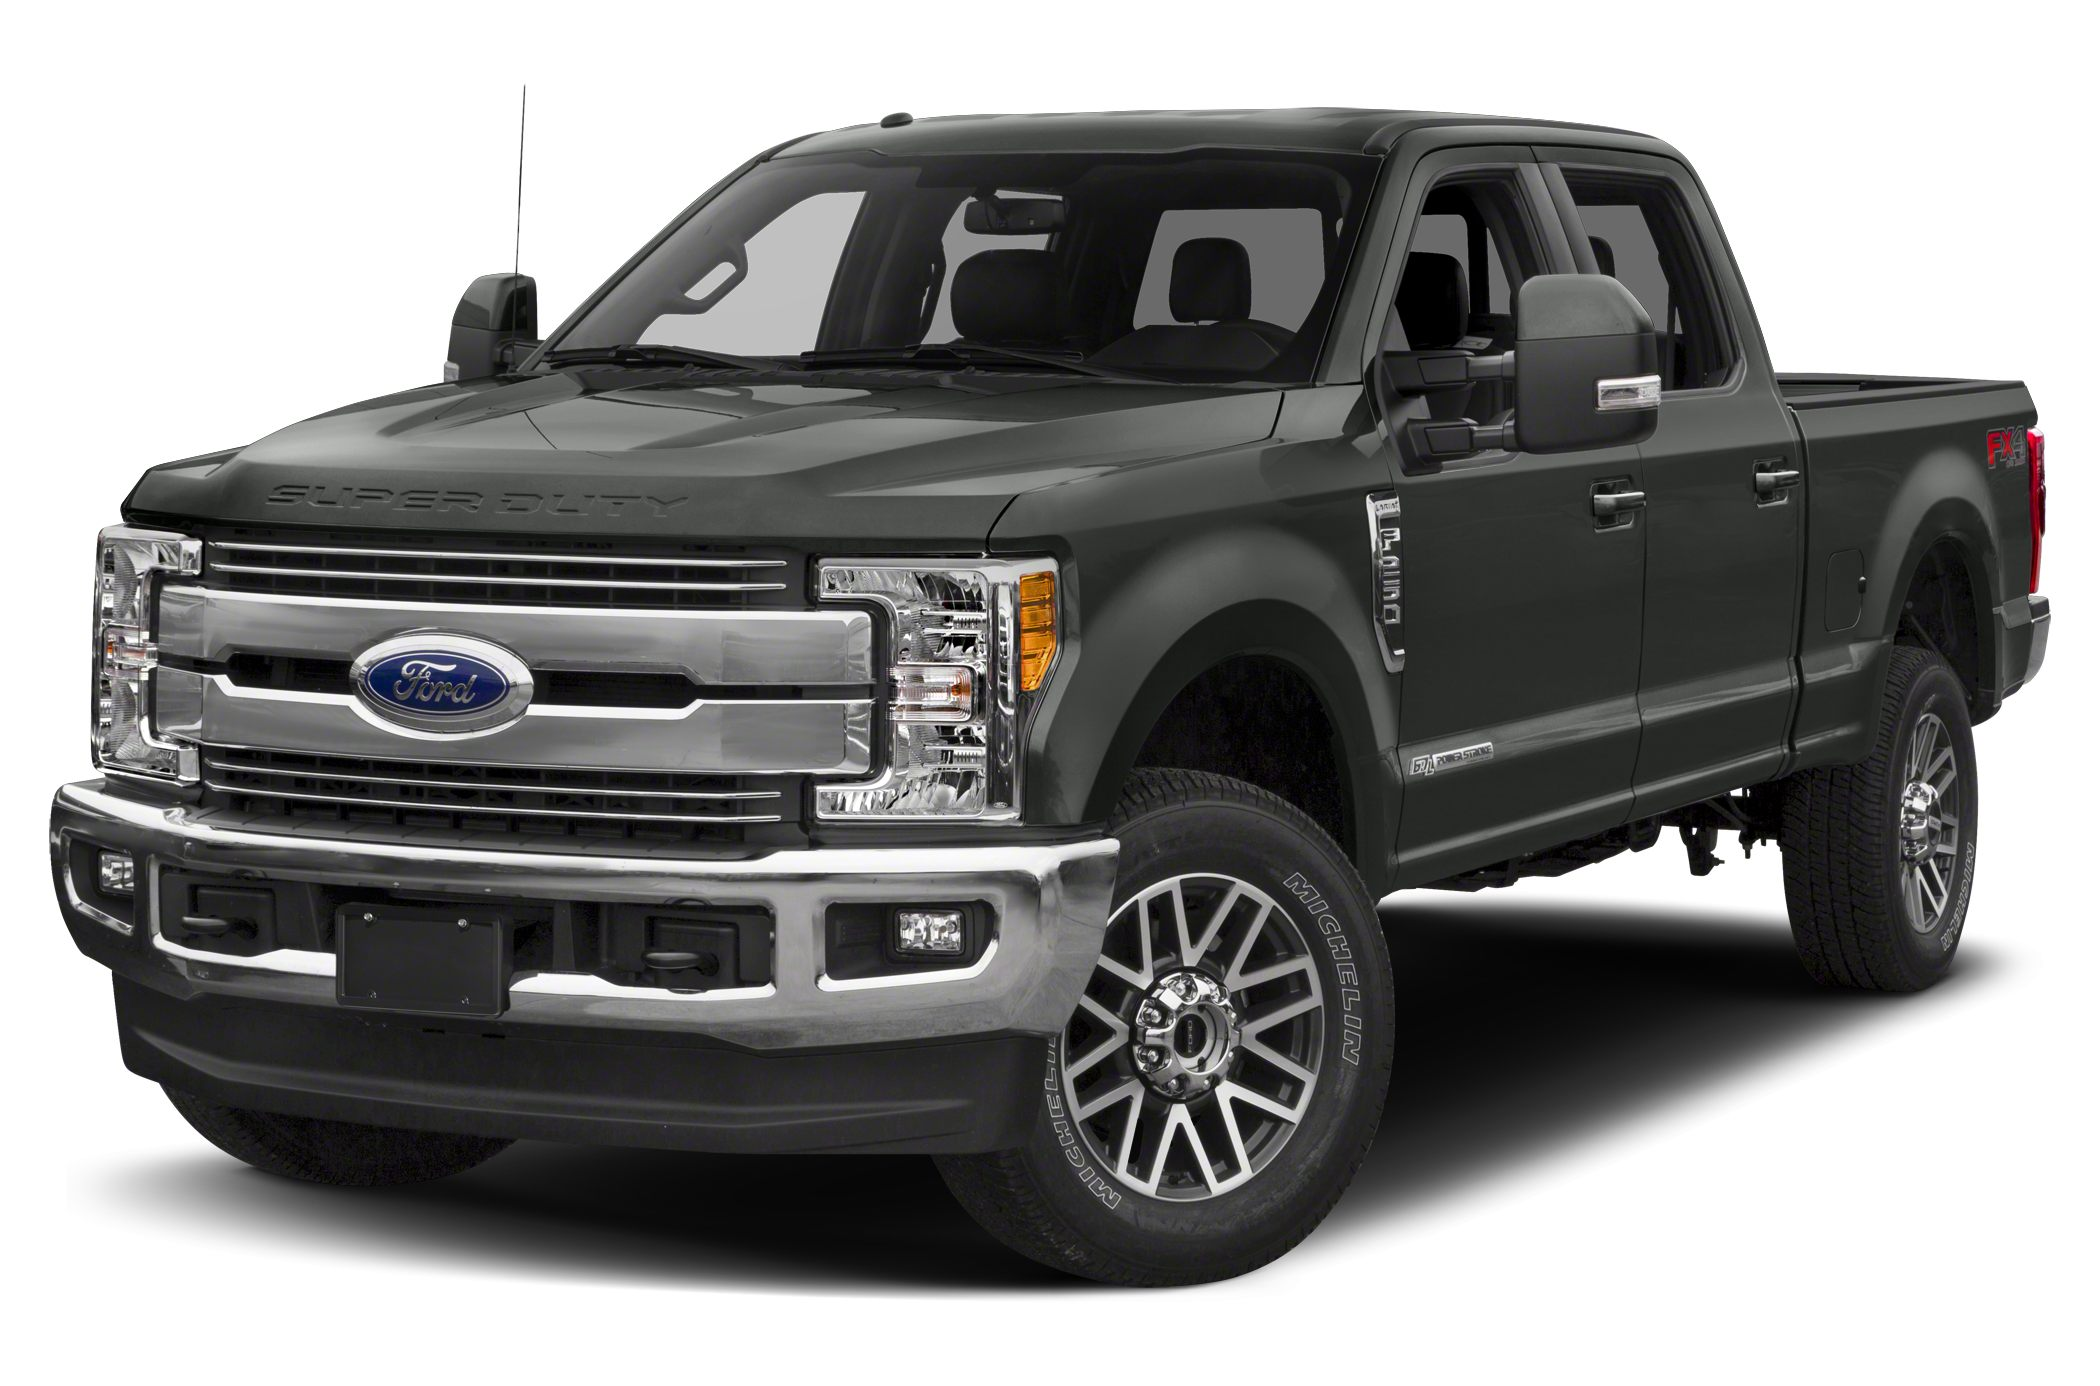 2019 Ford F-350 Lariat 4x4 SD Crew Cab 8 ft. box 176 in. WB SRW